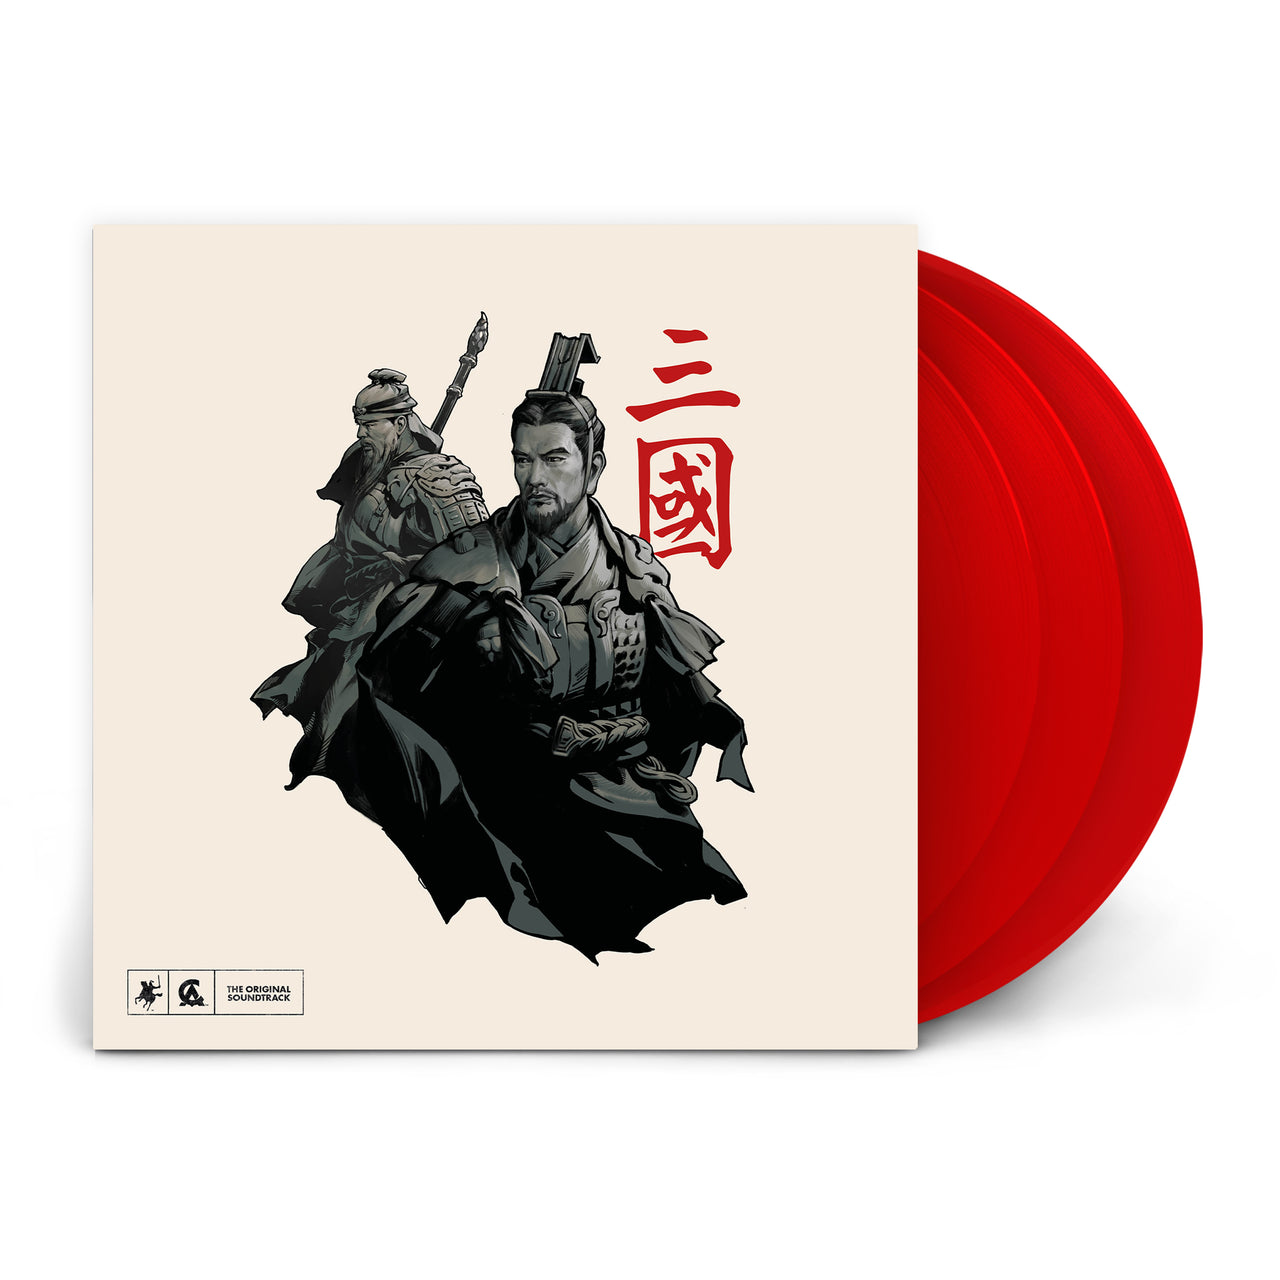 Total War: Three Kingdoms (Deluxe Triple Vinyl)